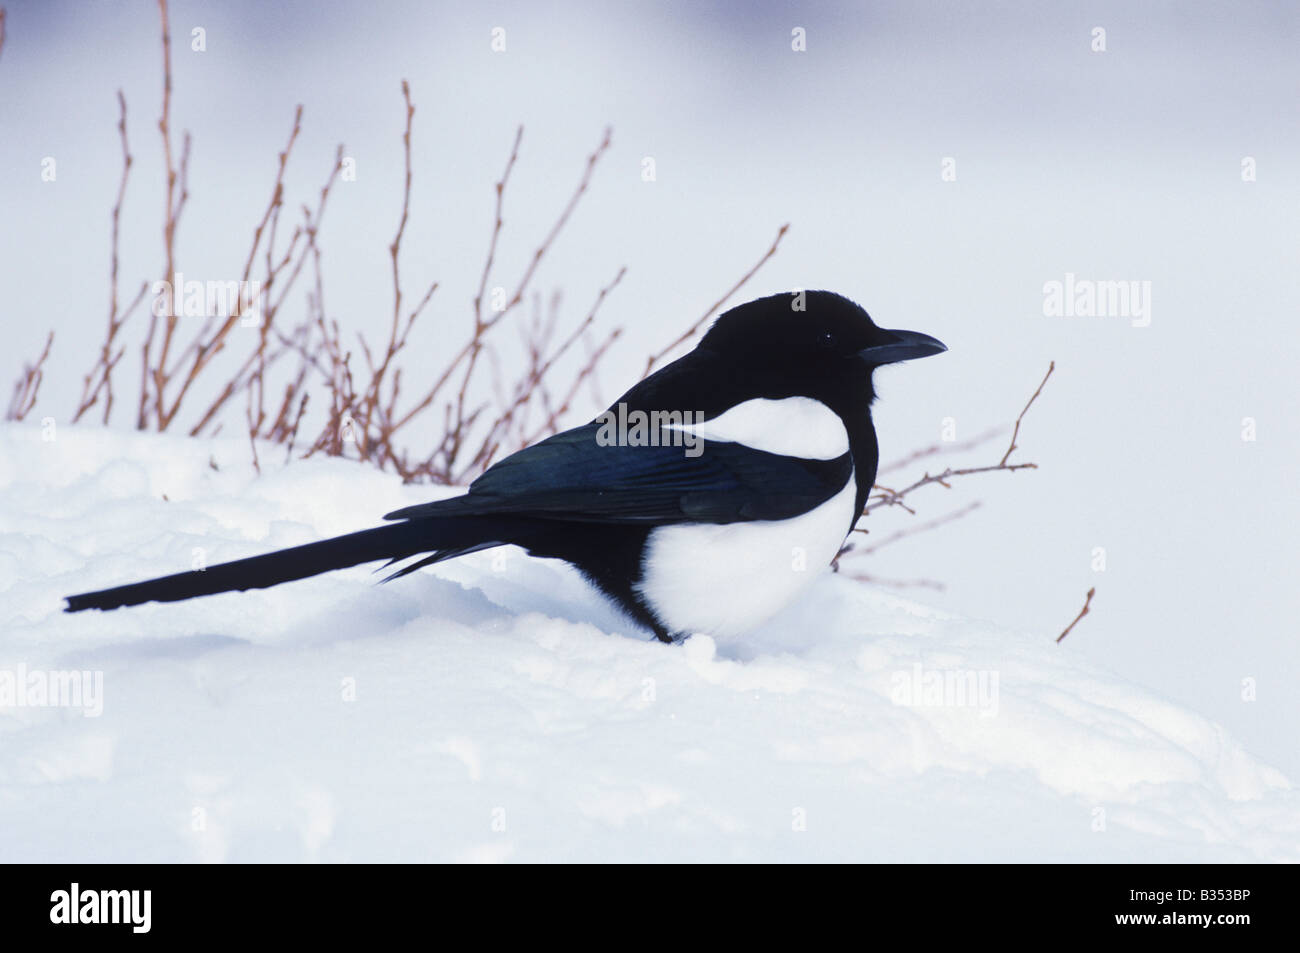 Black-billed Magpie Pica hudsonia adult in snow Rocky Mountain National Park Colorado USA - Stock Image